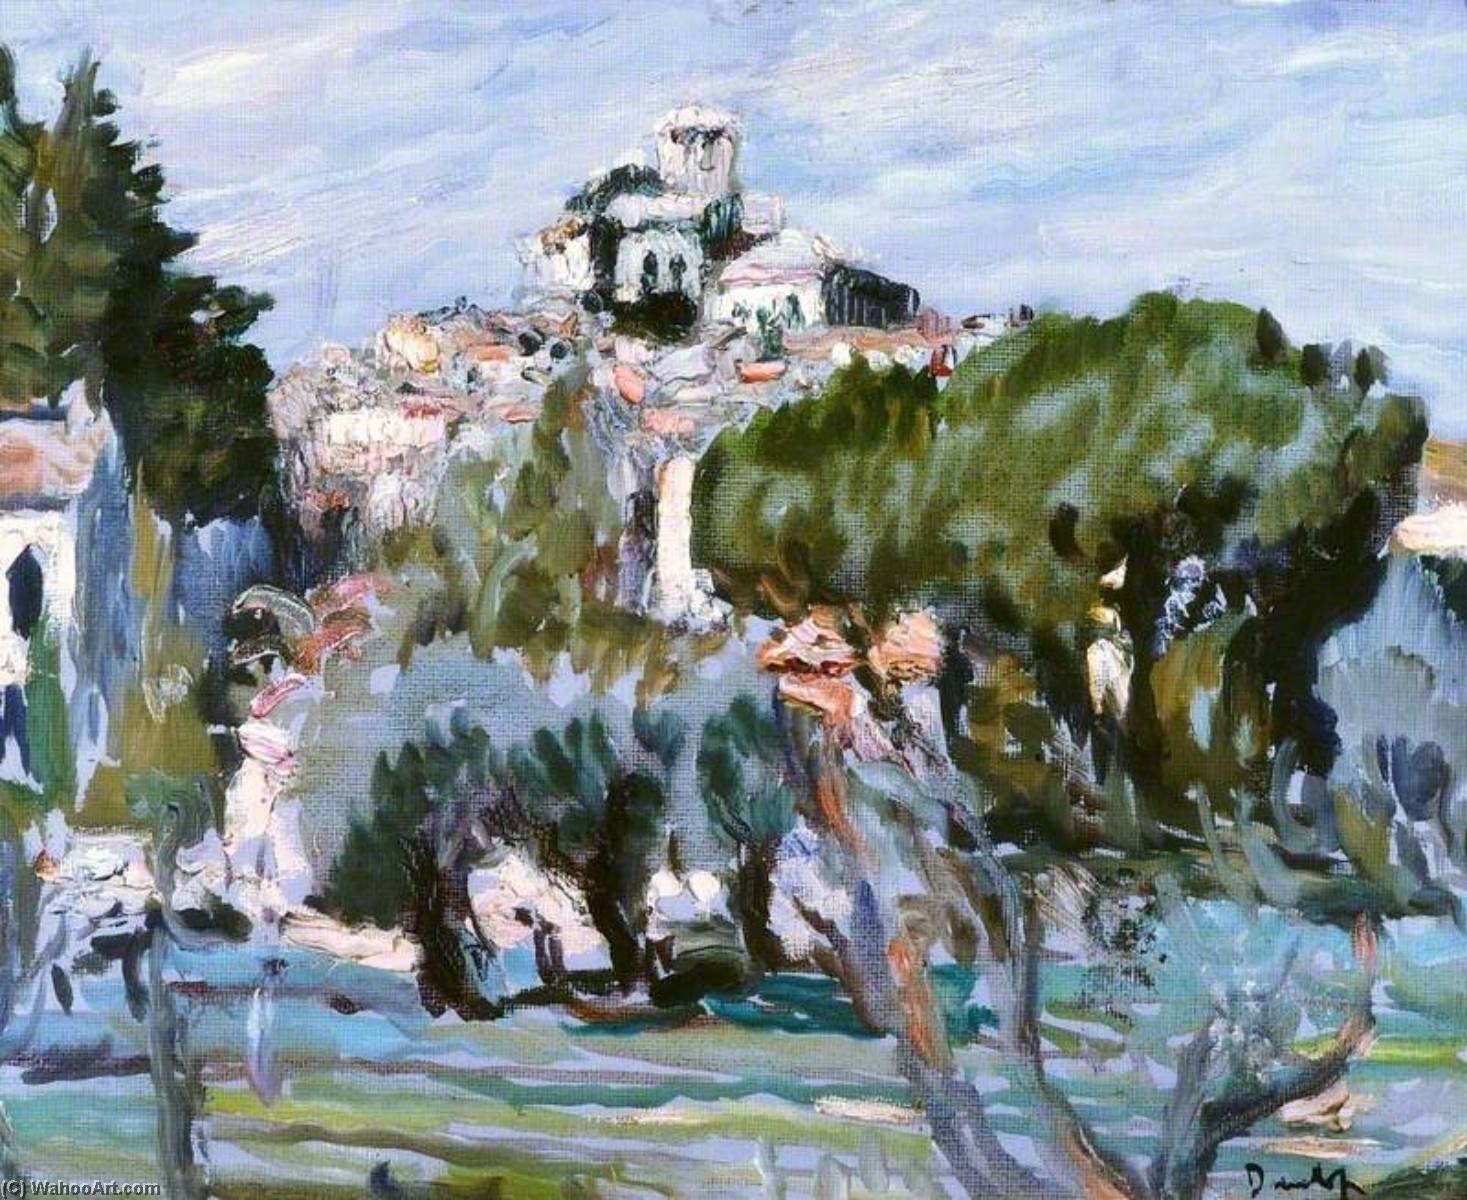 Order Painting Copy : South of France by Ronald Ossory Dunlop (1894-1973, Ireland) | WahooArt.com